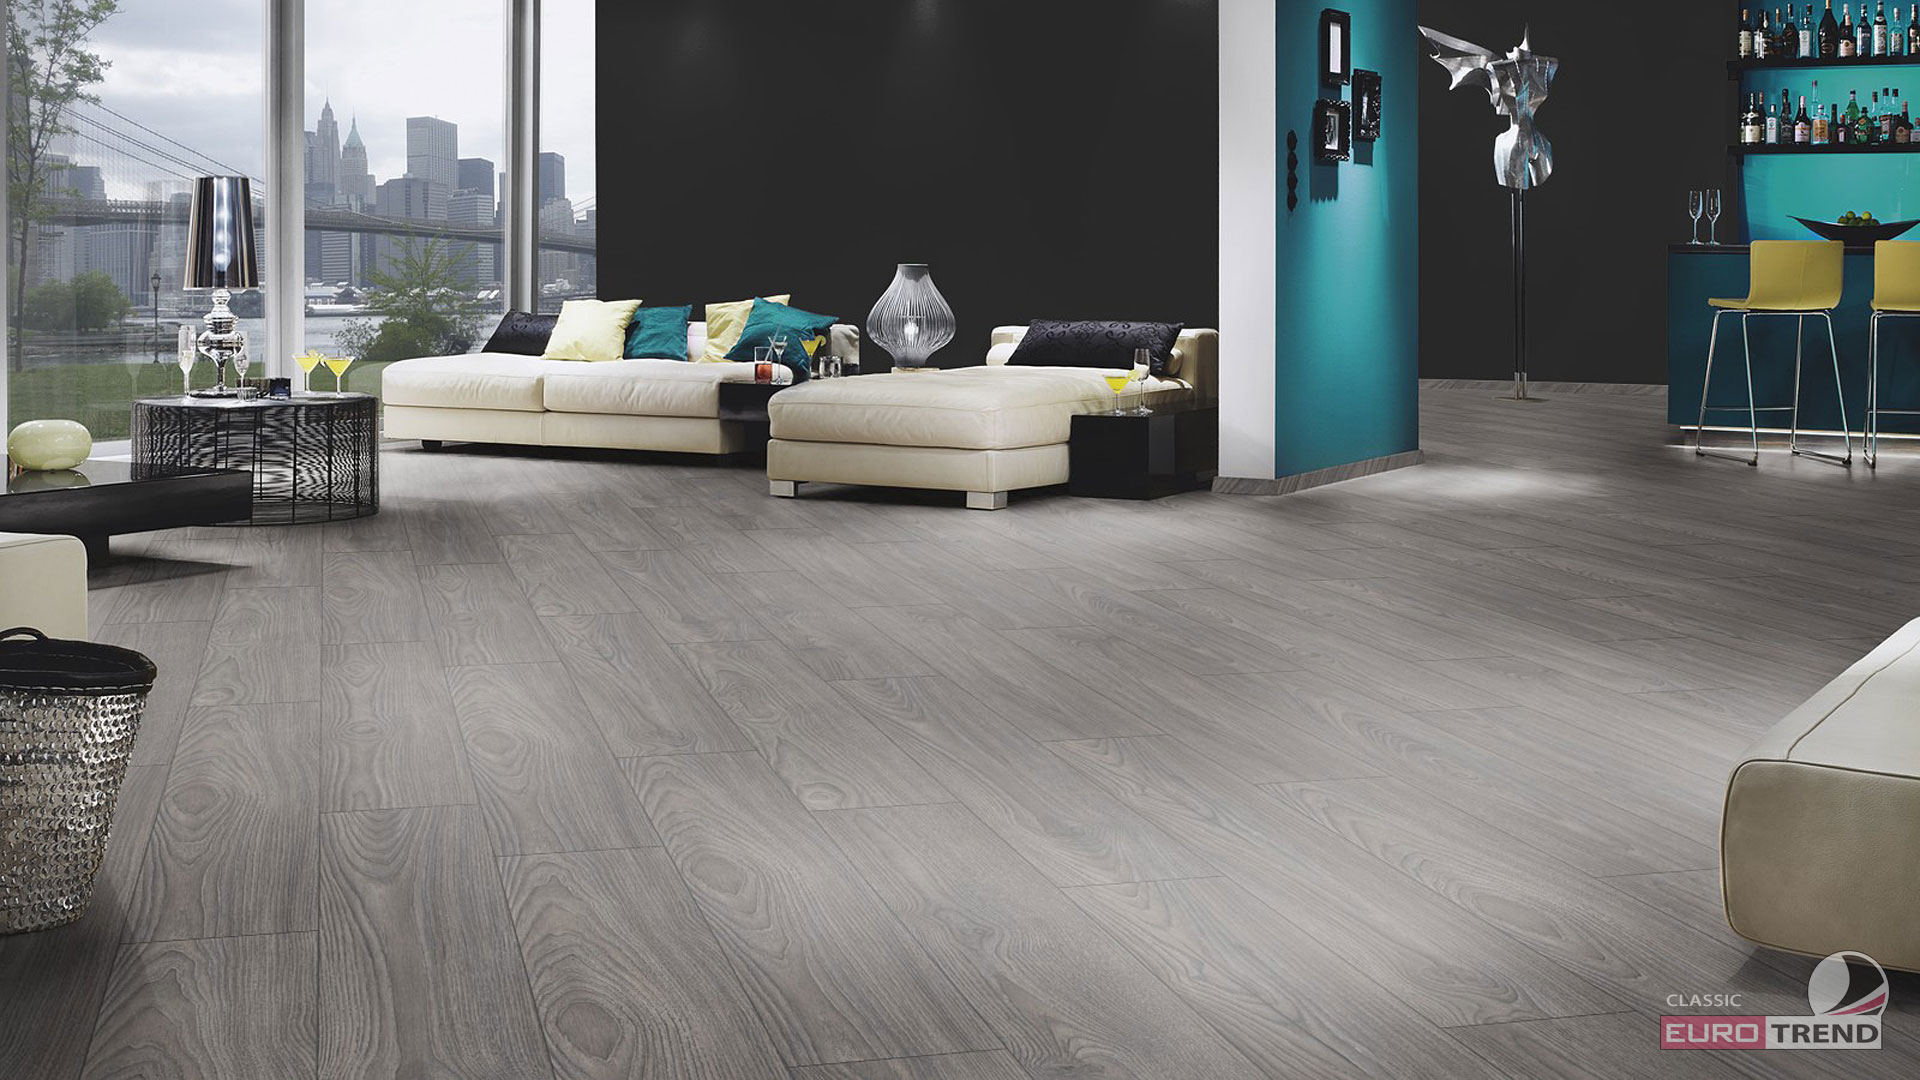 Eurotrend classic laminate floors eurostyle flooring for Hardwood floors vancouver